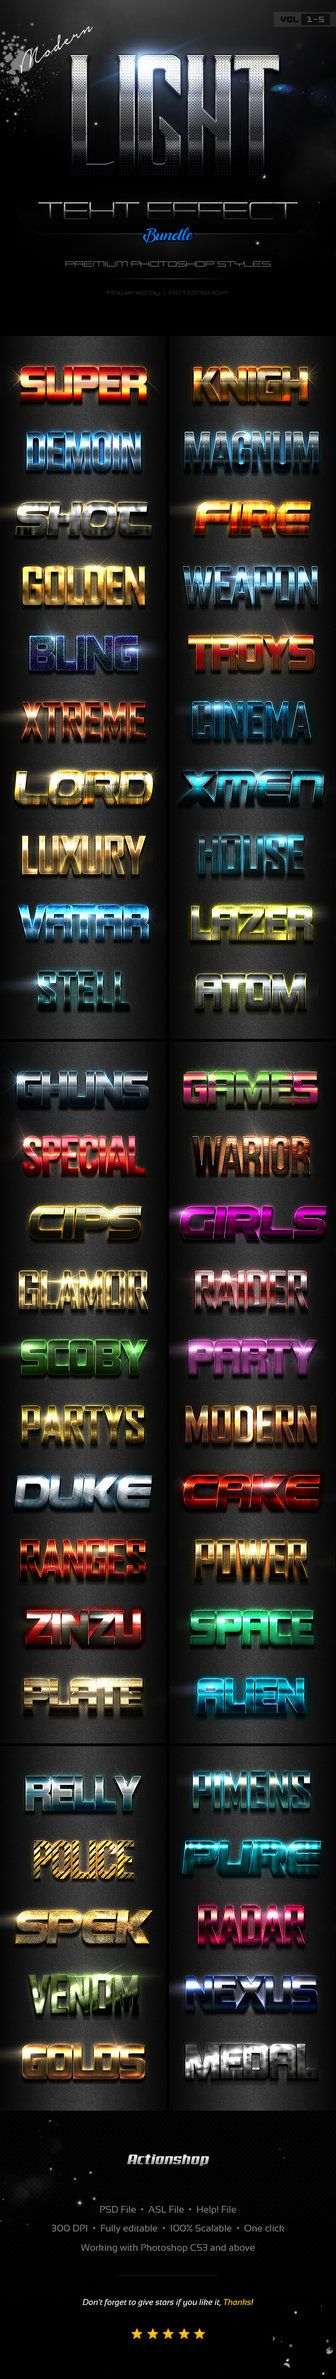 DOWNLOAD:      goo.gl/Xd96NVModern Light Text Effects BundleThis is a premium Adobe Photoshop layer styles. In this set includes source P...